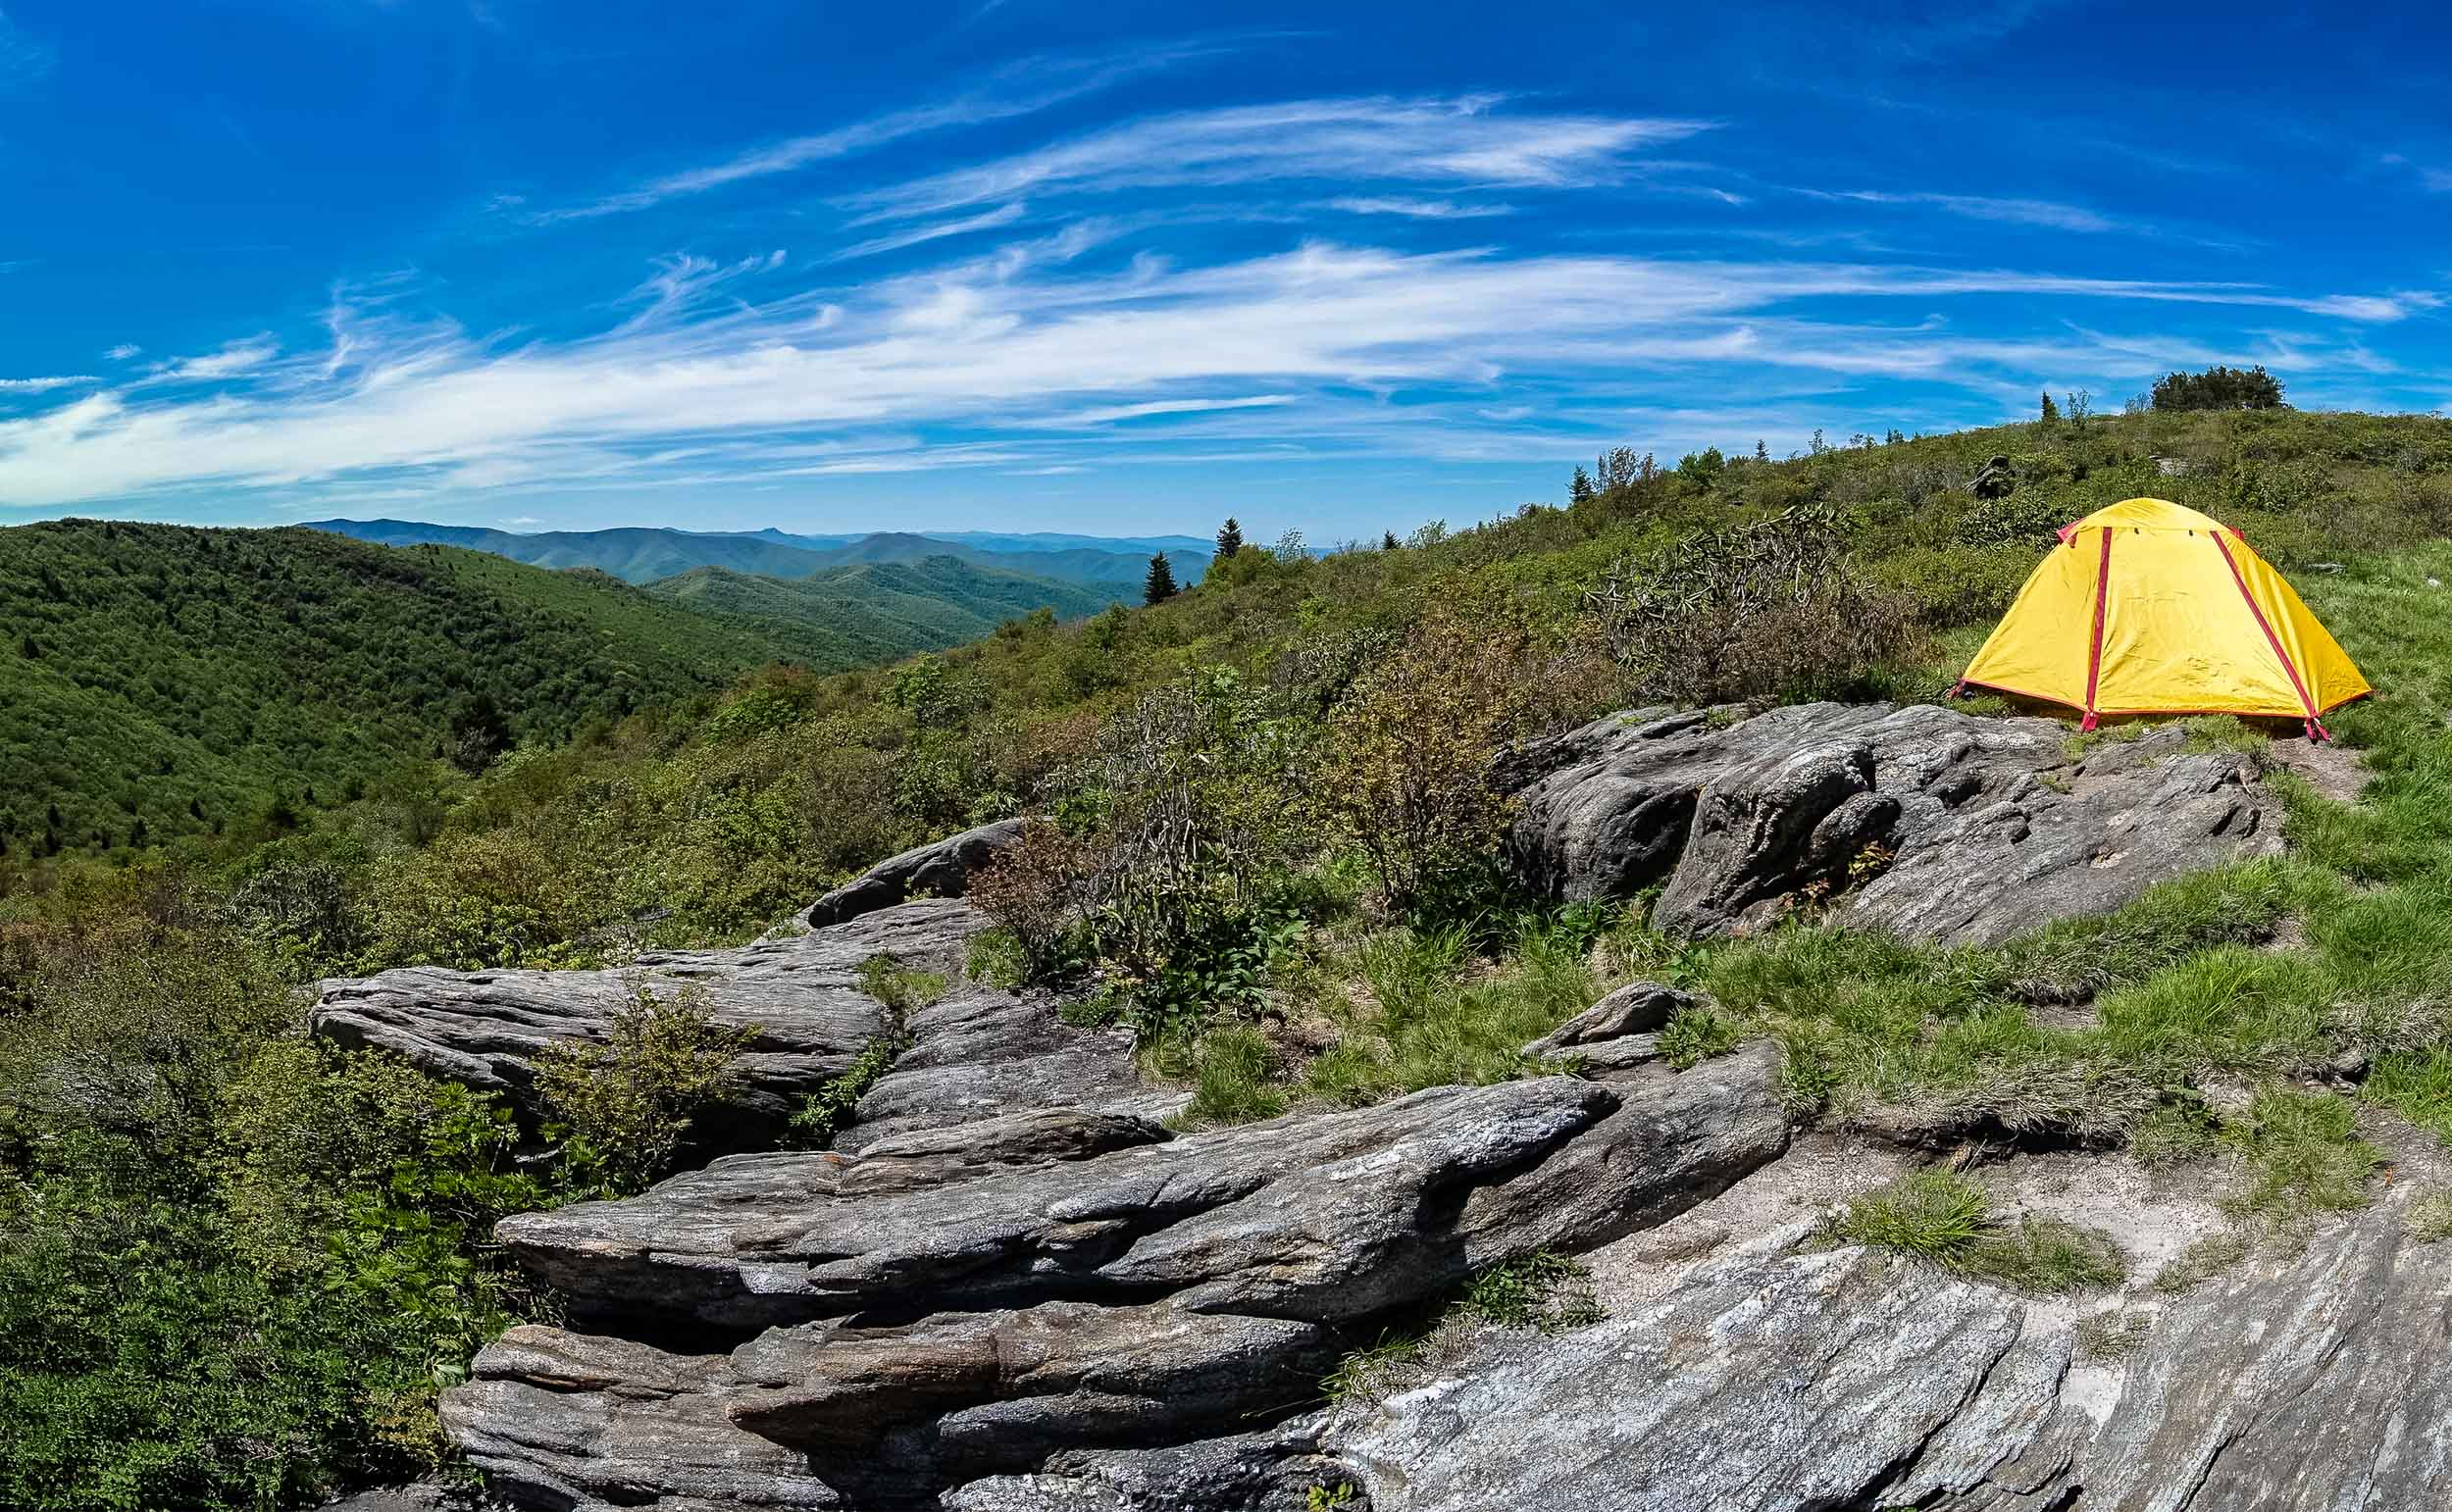 Camping in Pisgah National Forest.